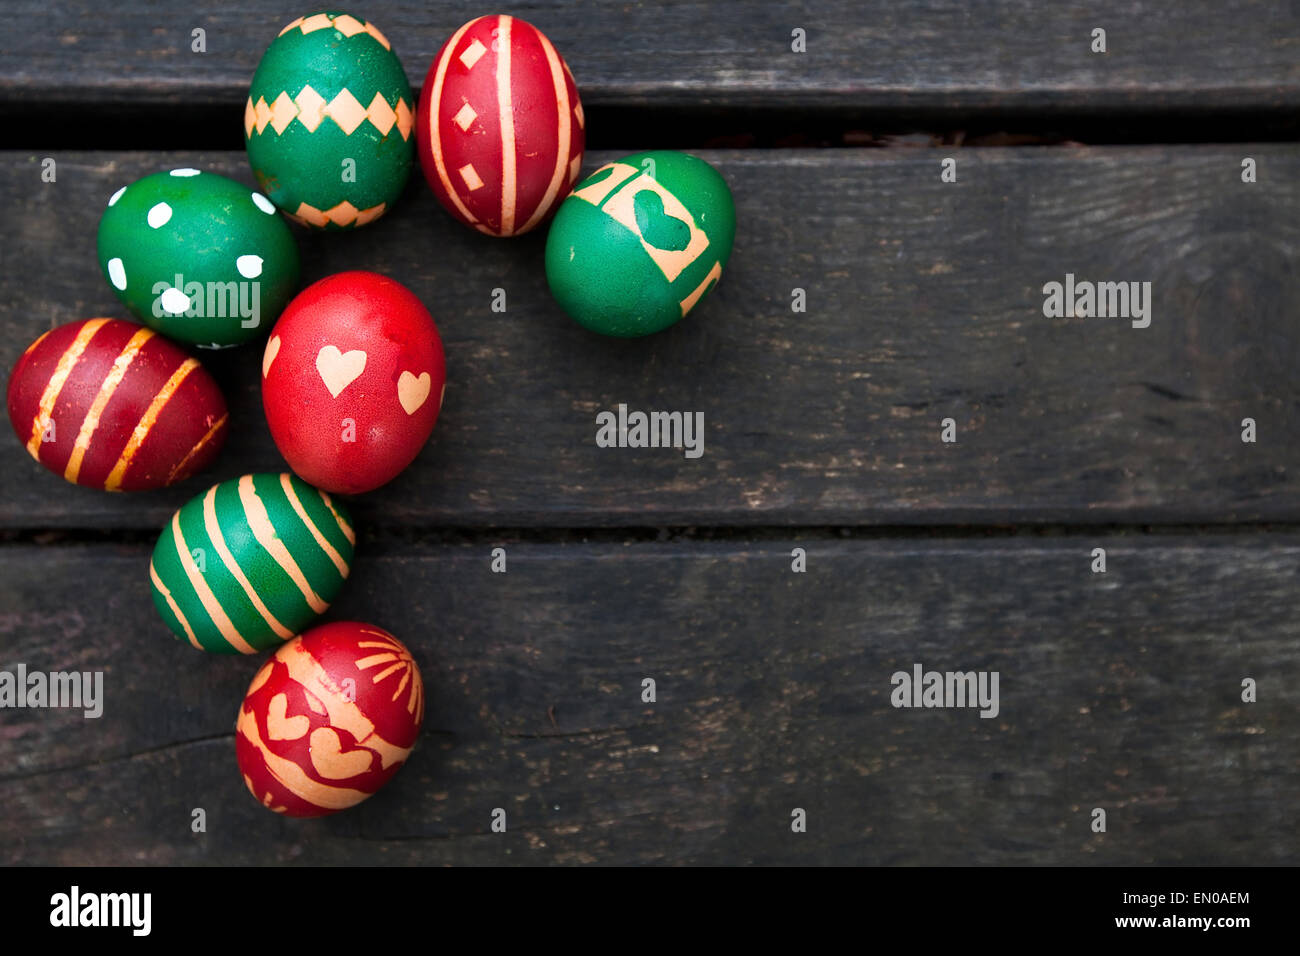 Colored Eggs Stock Photos & Colored Eggs Stock Images - Alamy